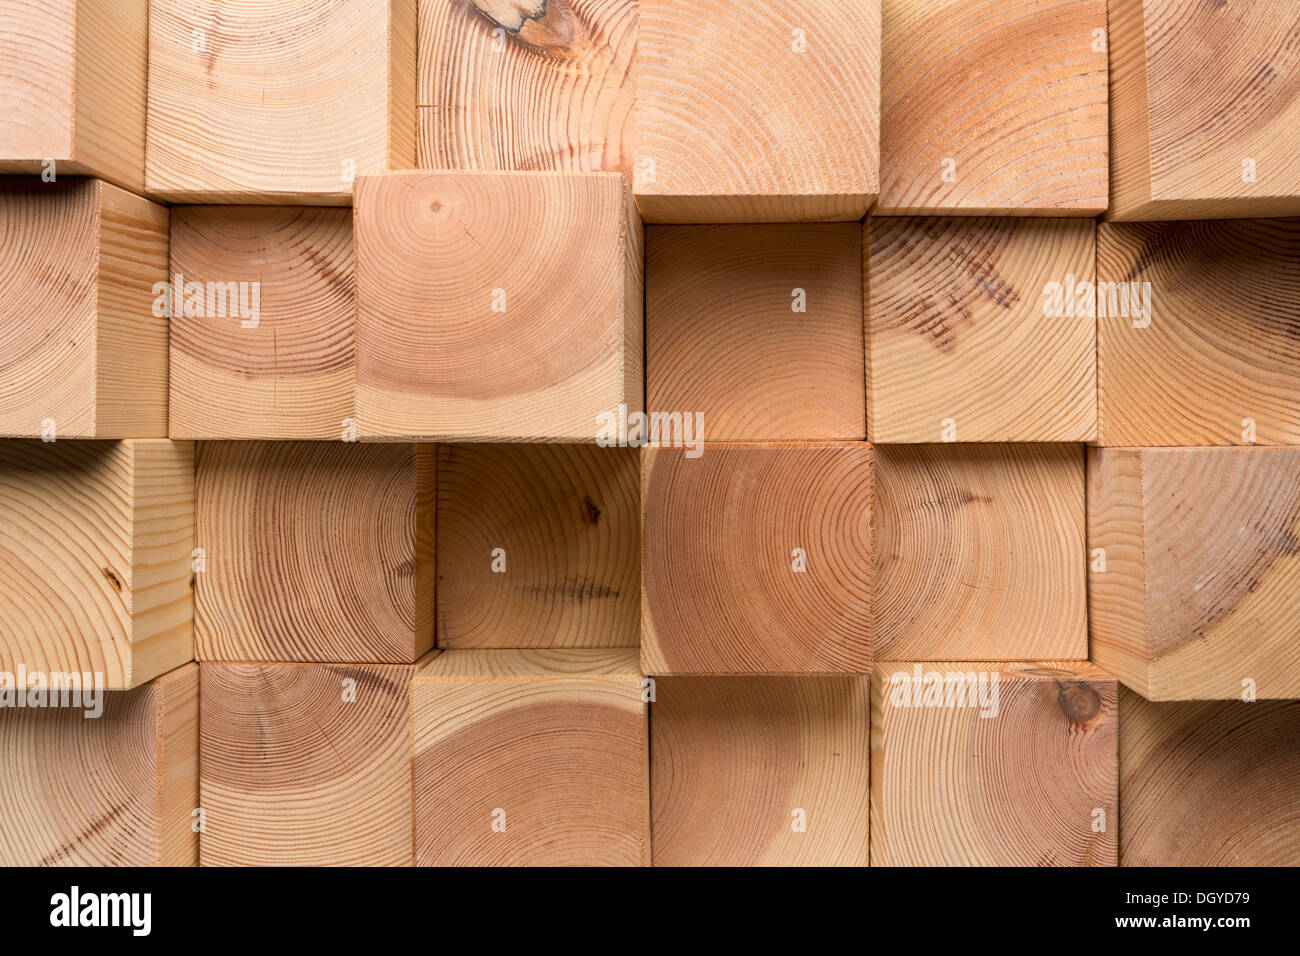 A grid of wooden blocks arranged in varying lengths - Stock Image